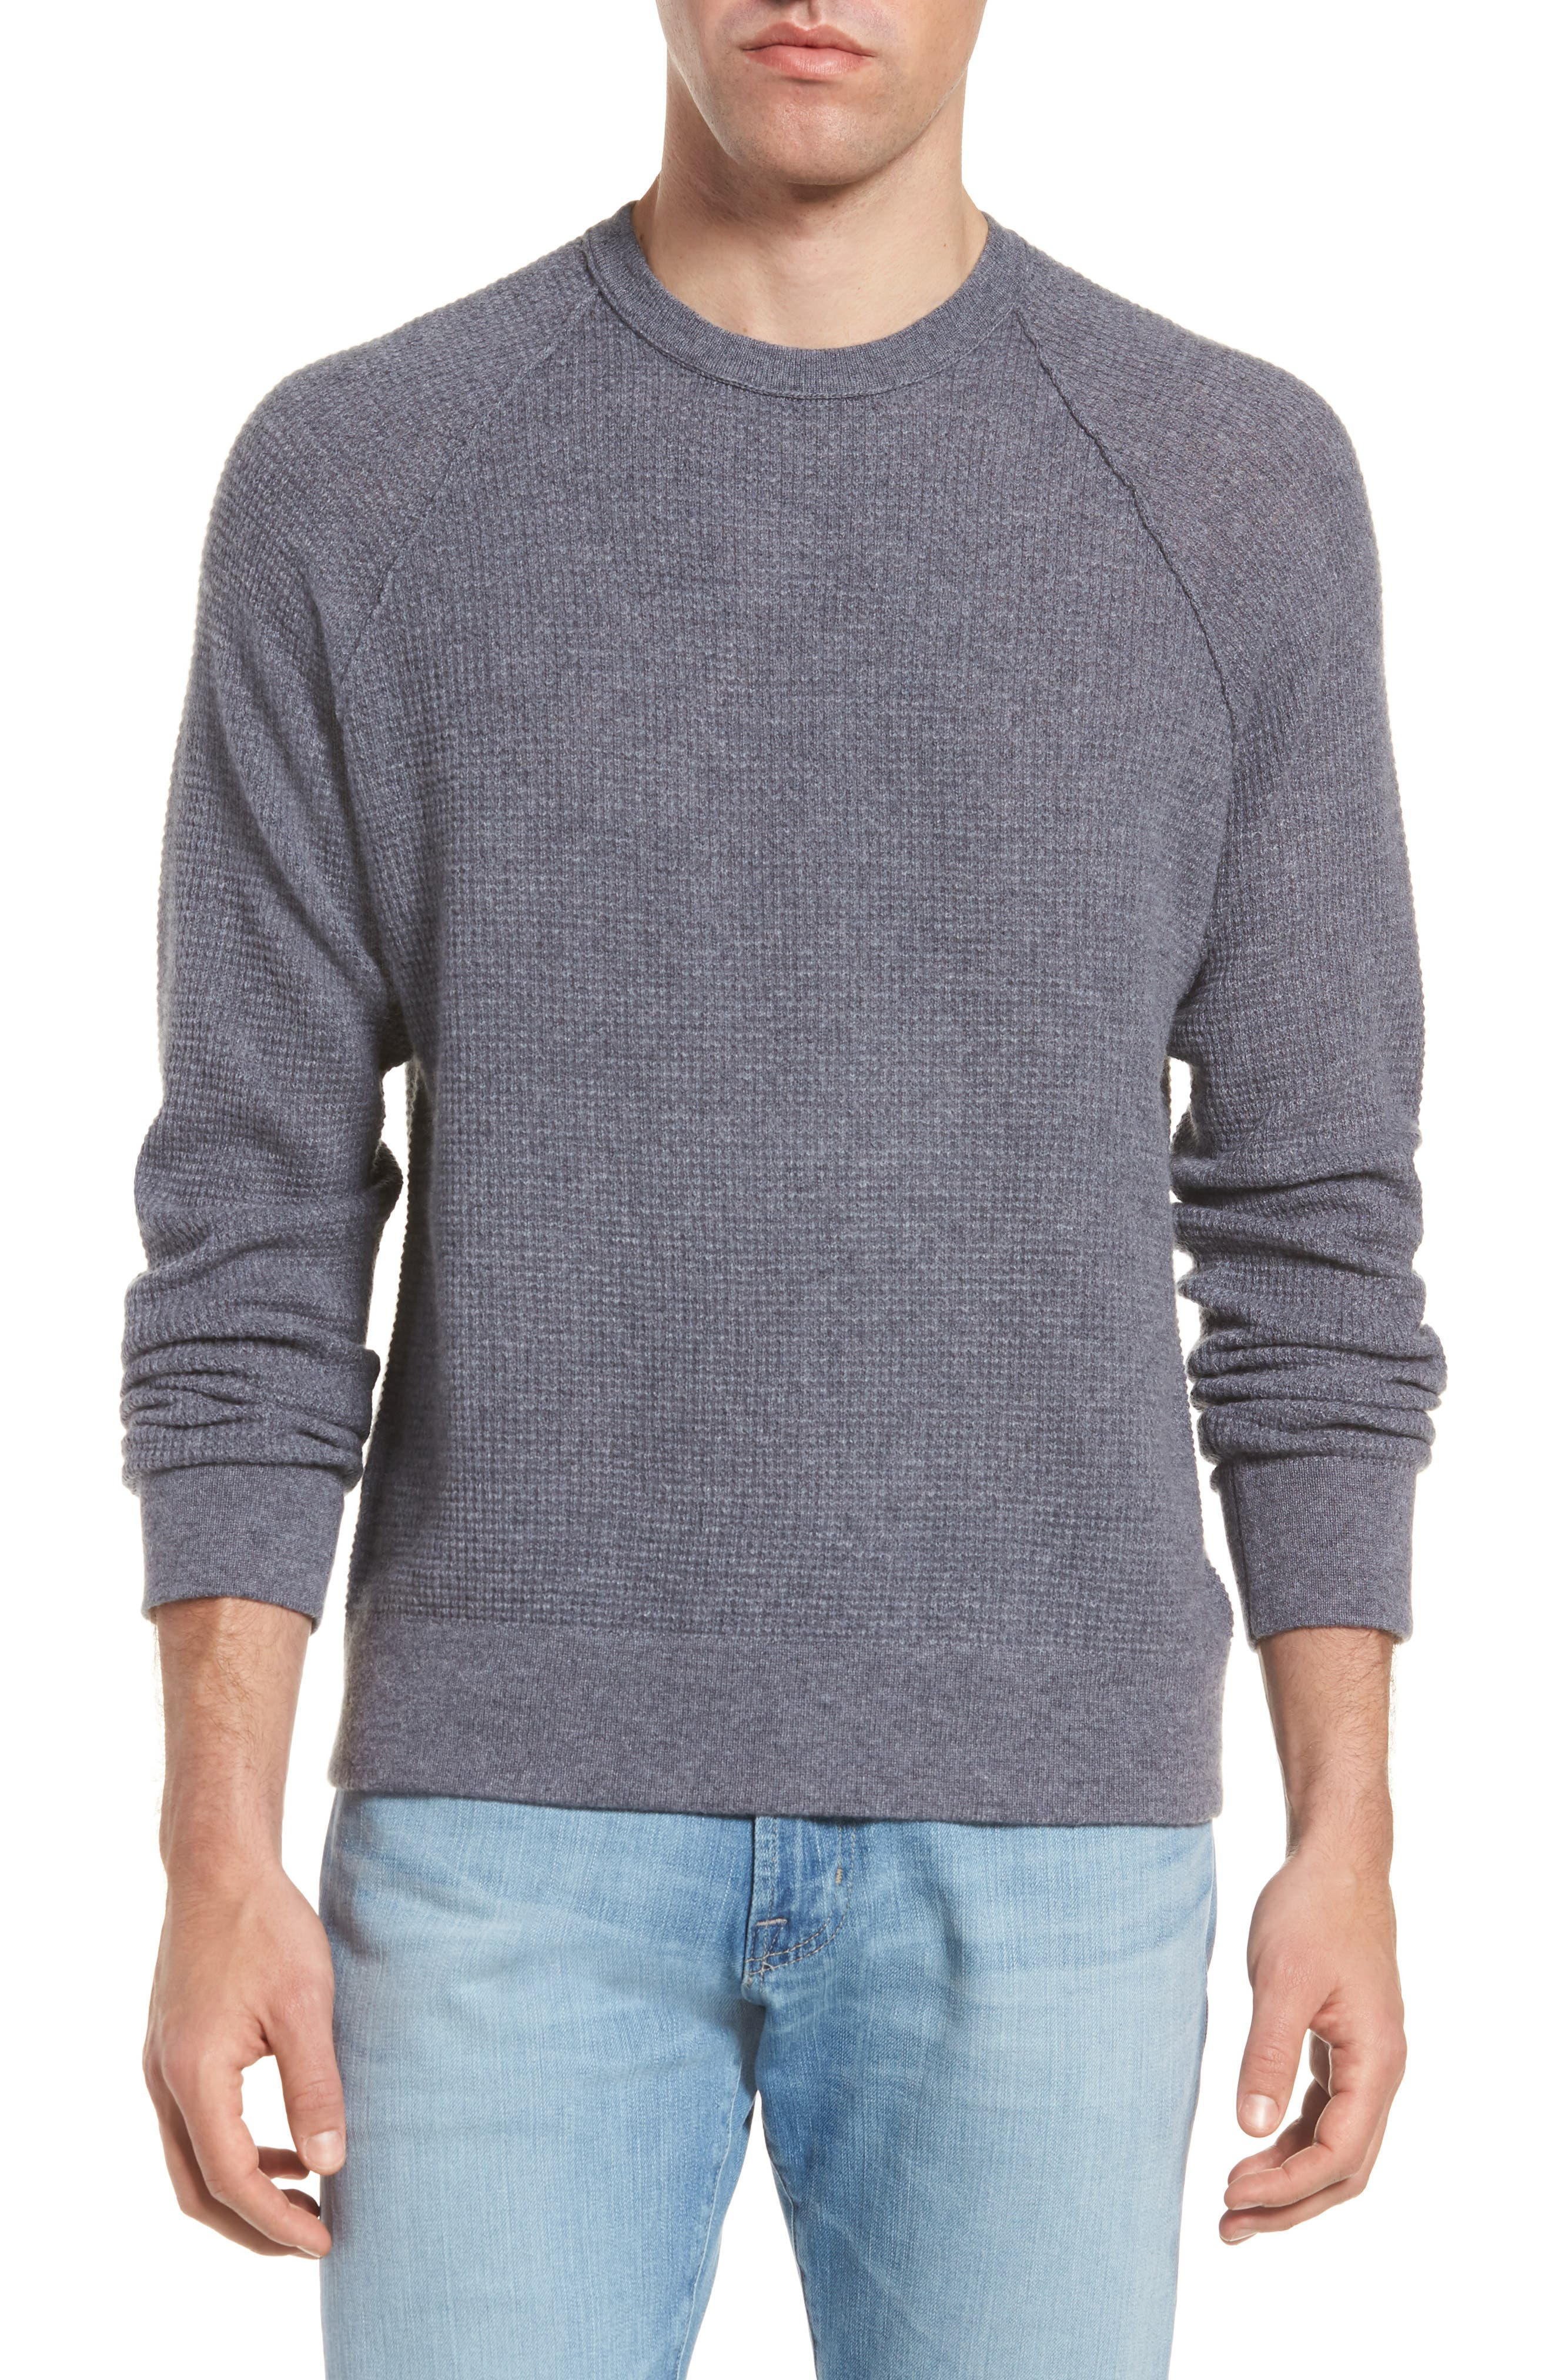 Thermal Cashmere Sweater,                             Main thumbnail 1, color,                             077